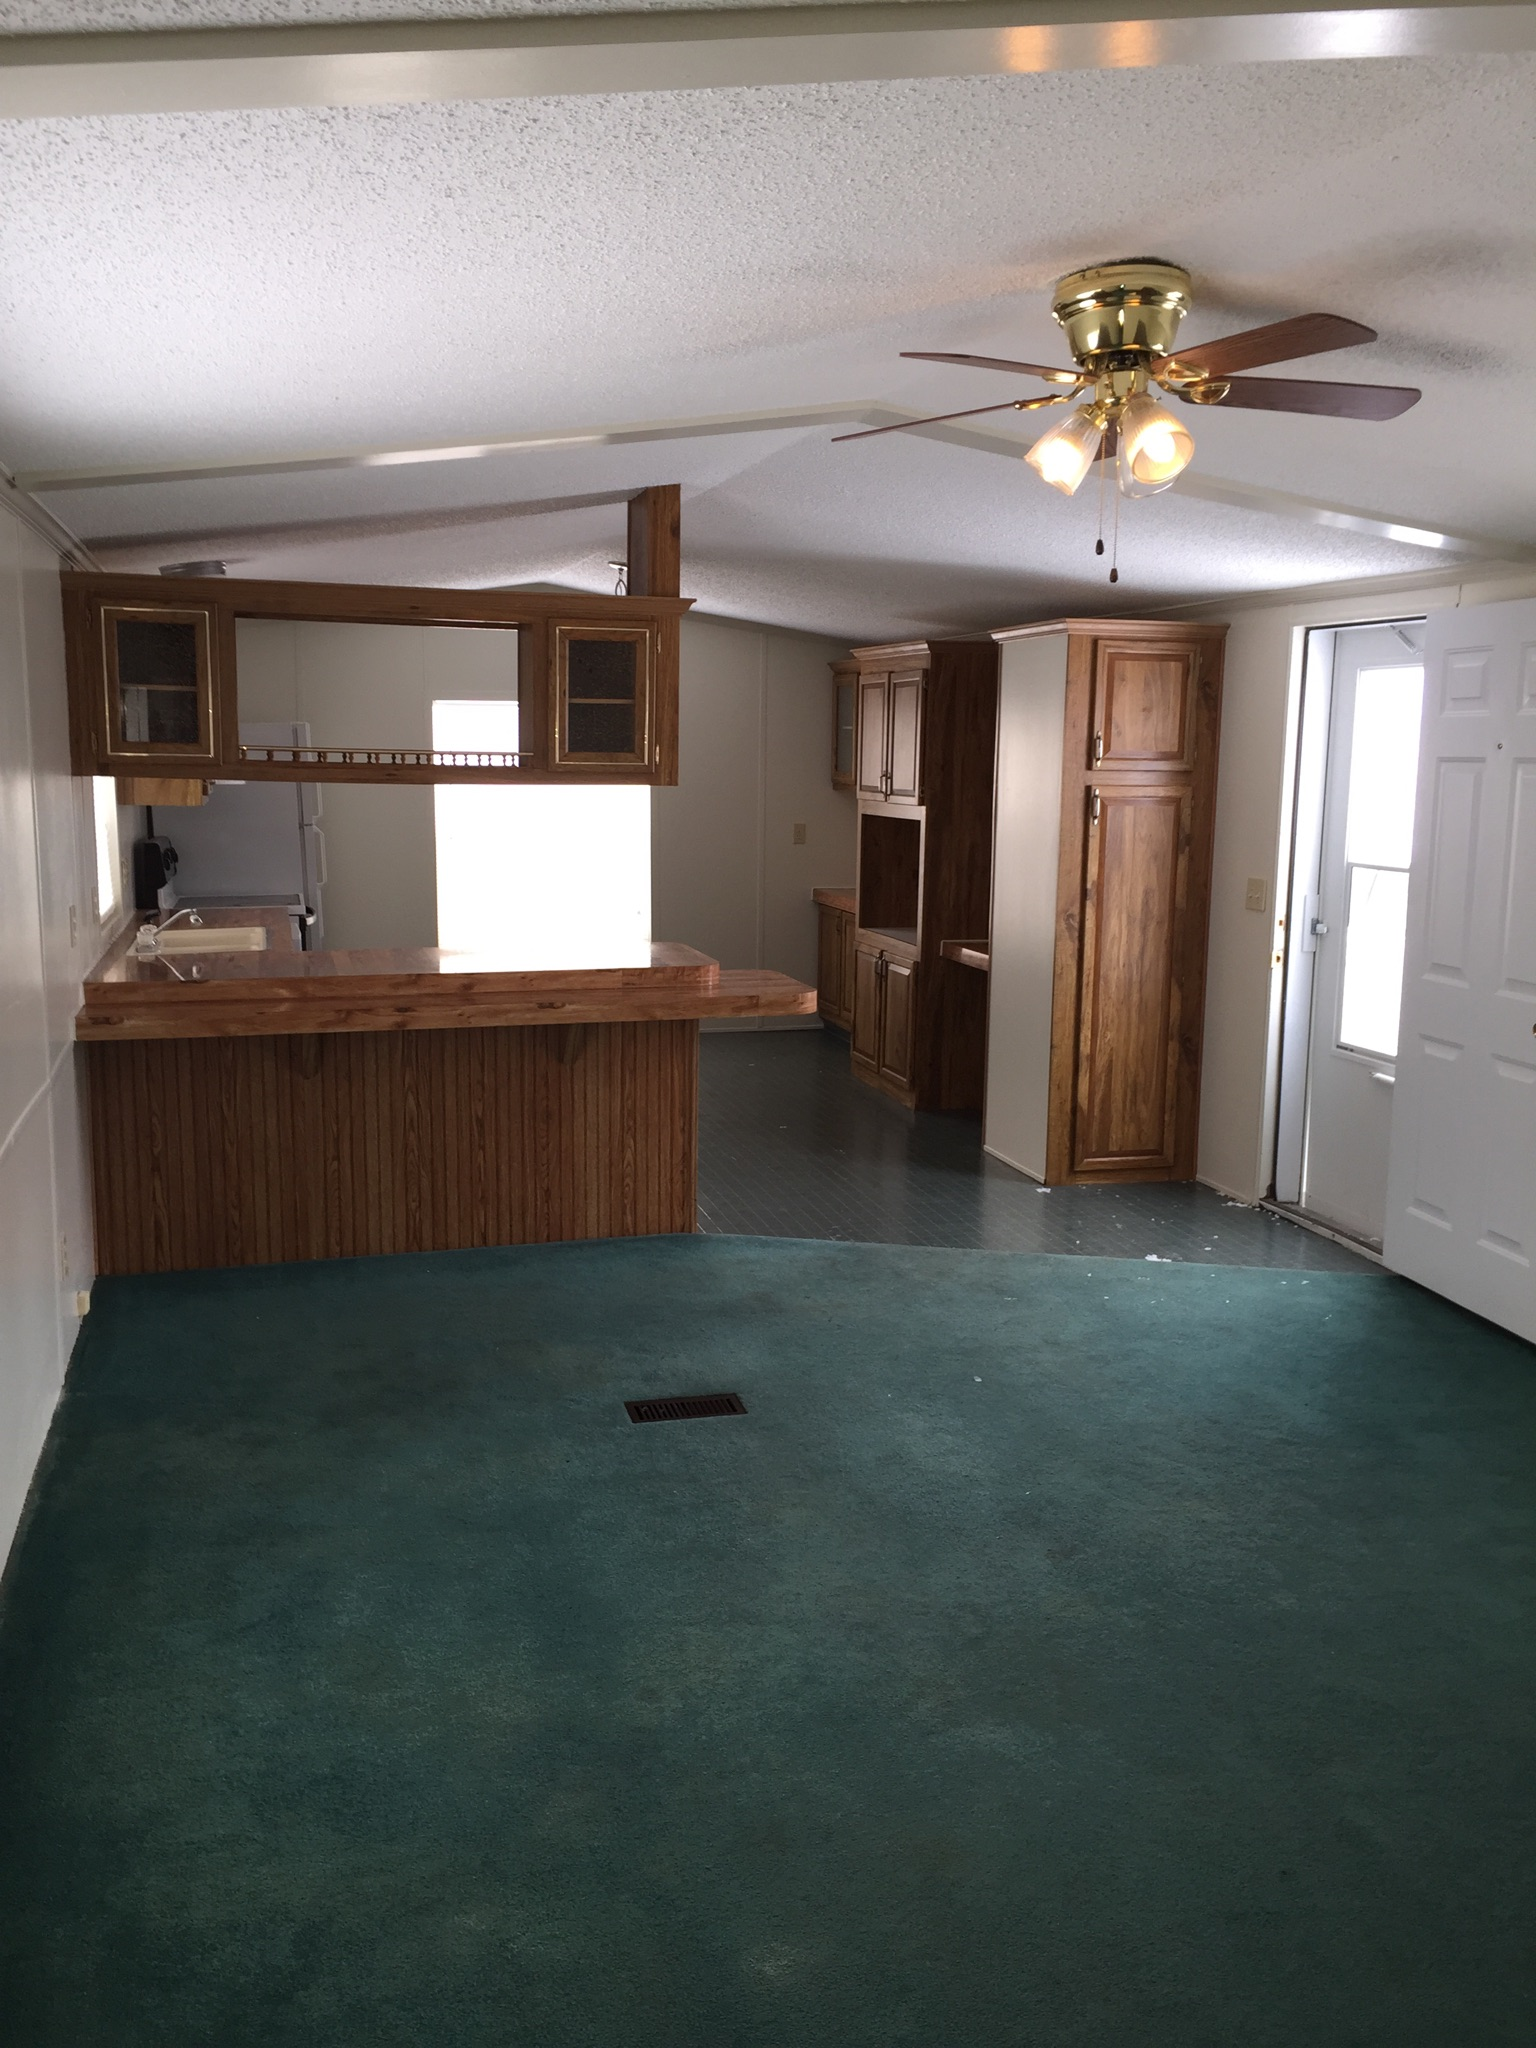 Lot 49 mobile home villa 1988 champion 14 70 2 bedroom 1 One bedroom one bath mobile home